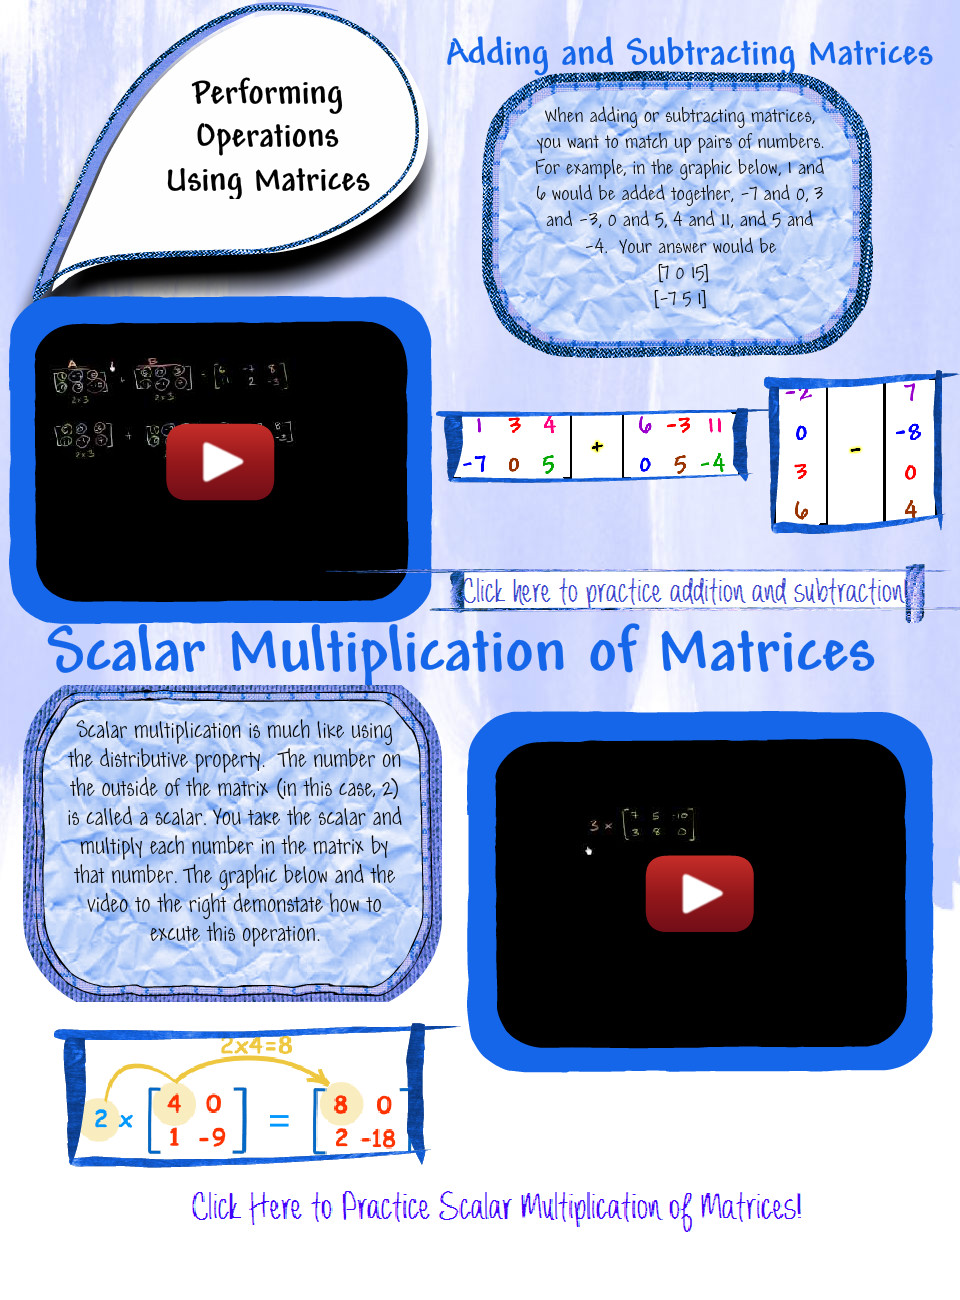 Performing Operations Using Matrices